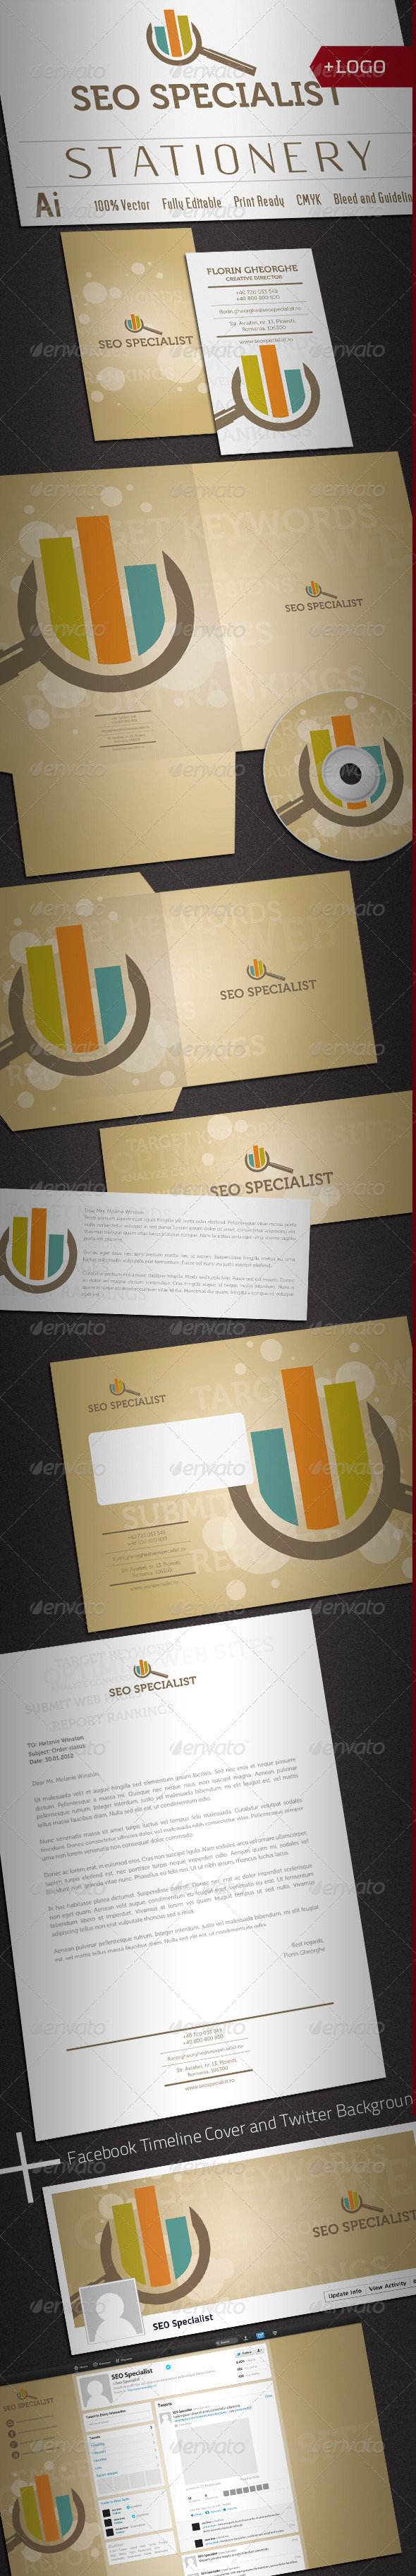 Seo Specialist Stationery - Stationery Print Templates